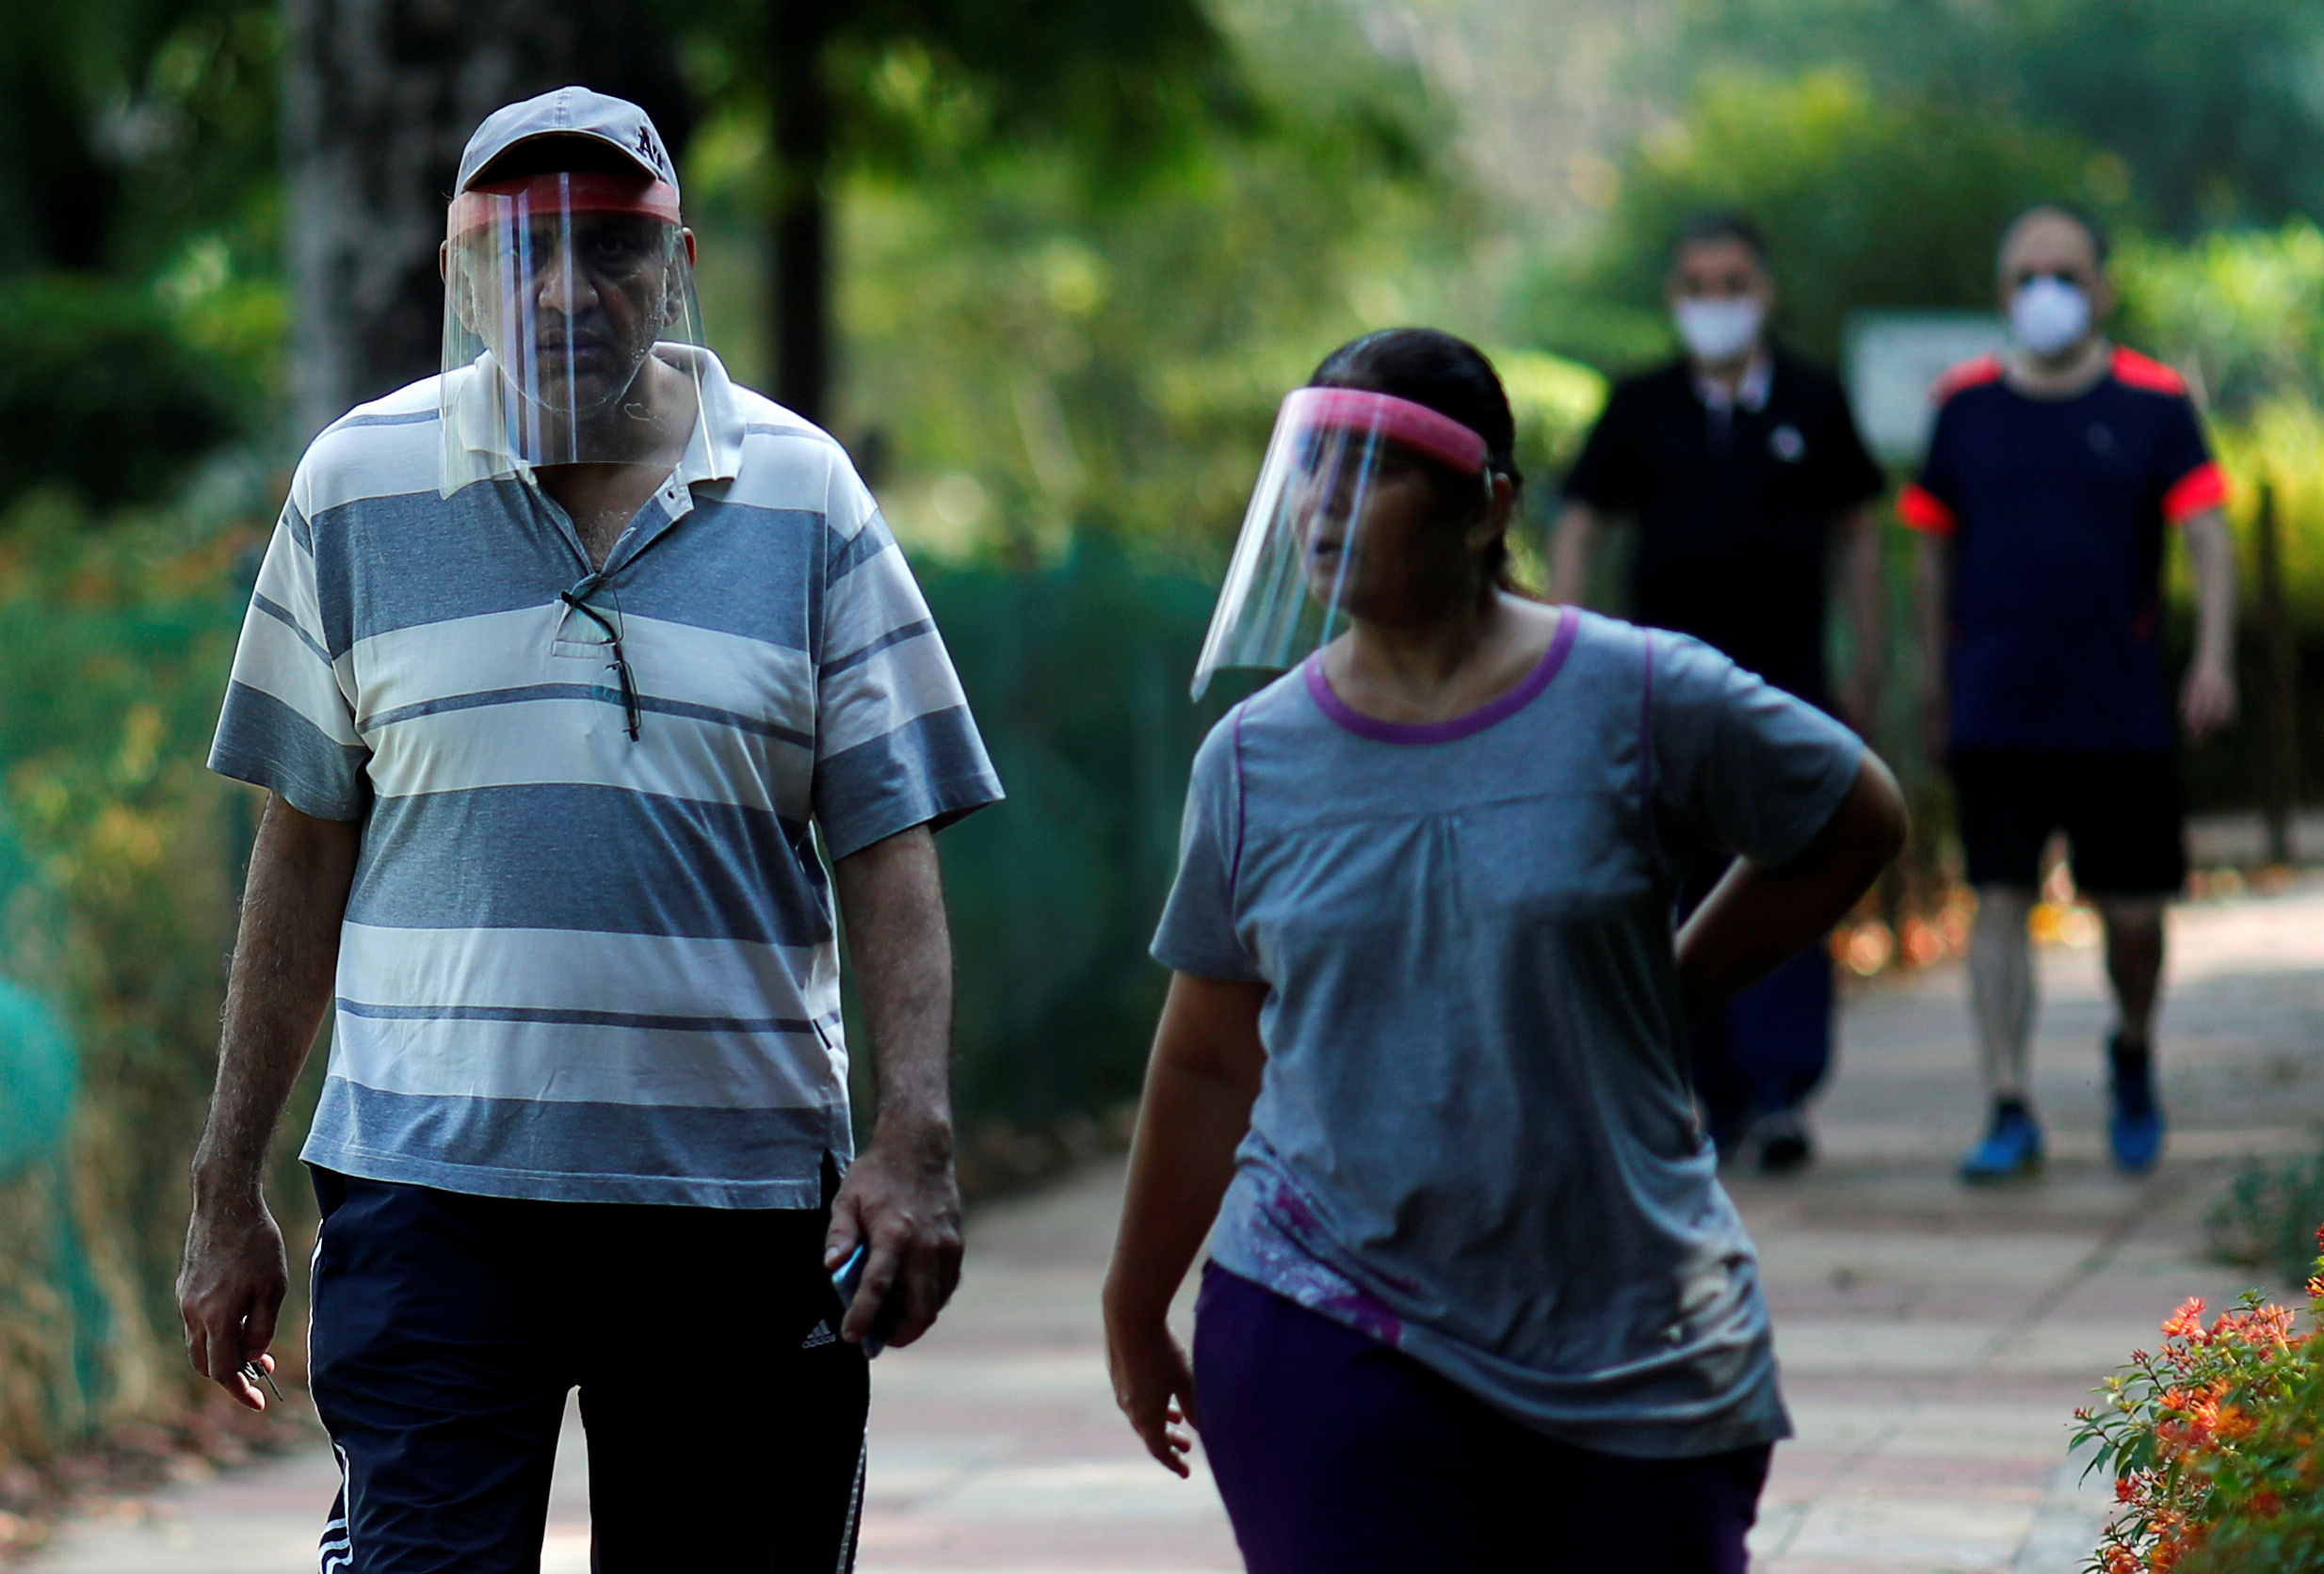 FILE PHOTO: People wearing protective face shields walk inside a park after few restrictions were lifted, during an extended nationwide lockdown to slow the spread of the coronavirus disease (COVID-19), in New Delhi, India, May 31, 2020. REUTERS/Adnan Abidi